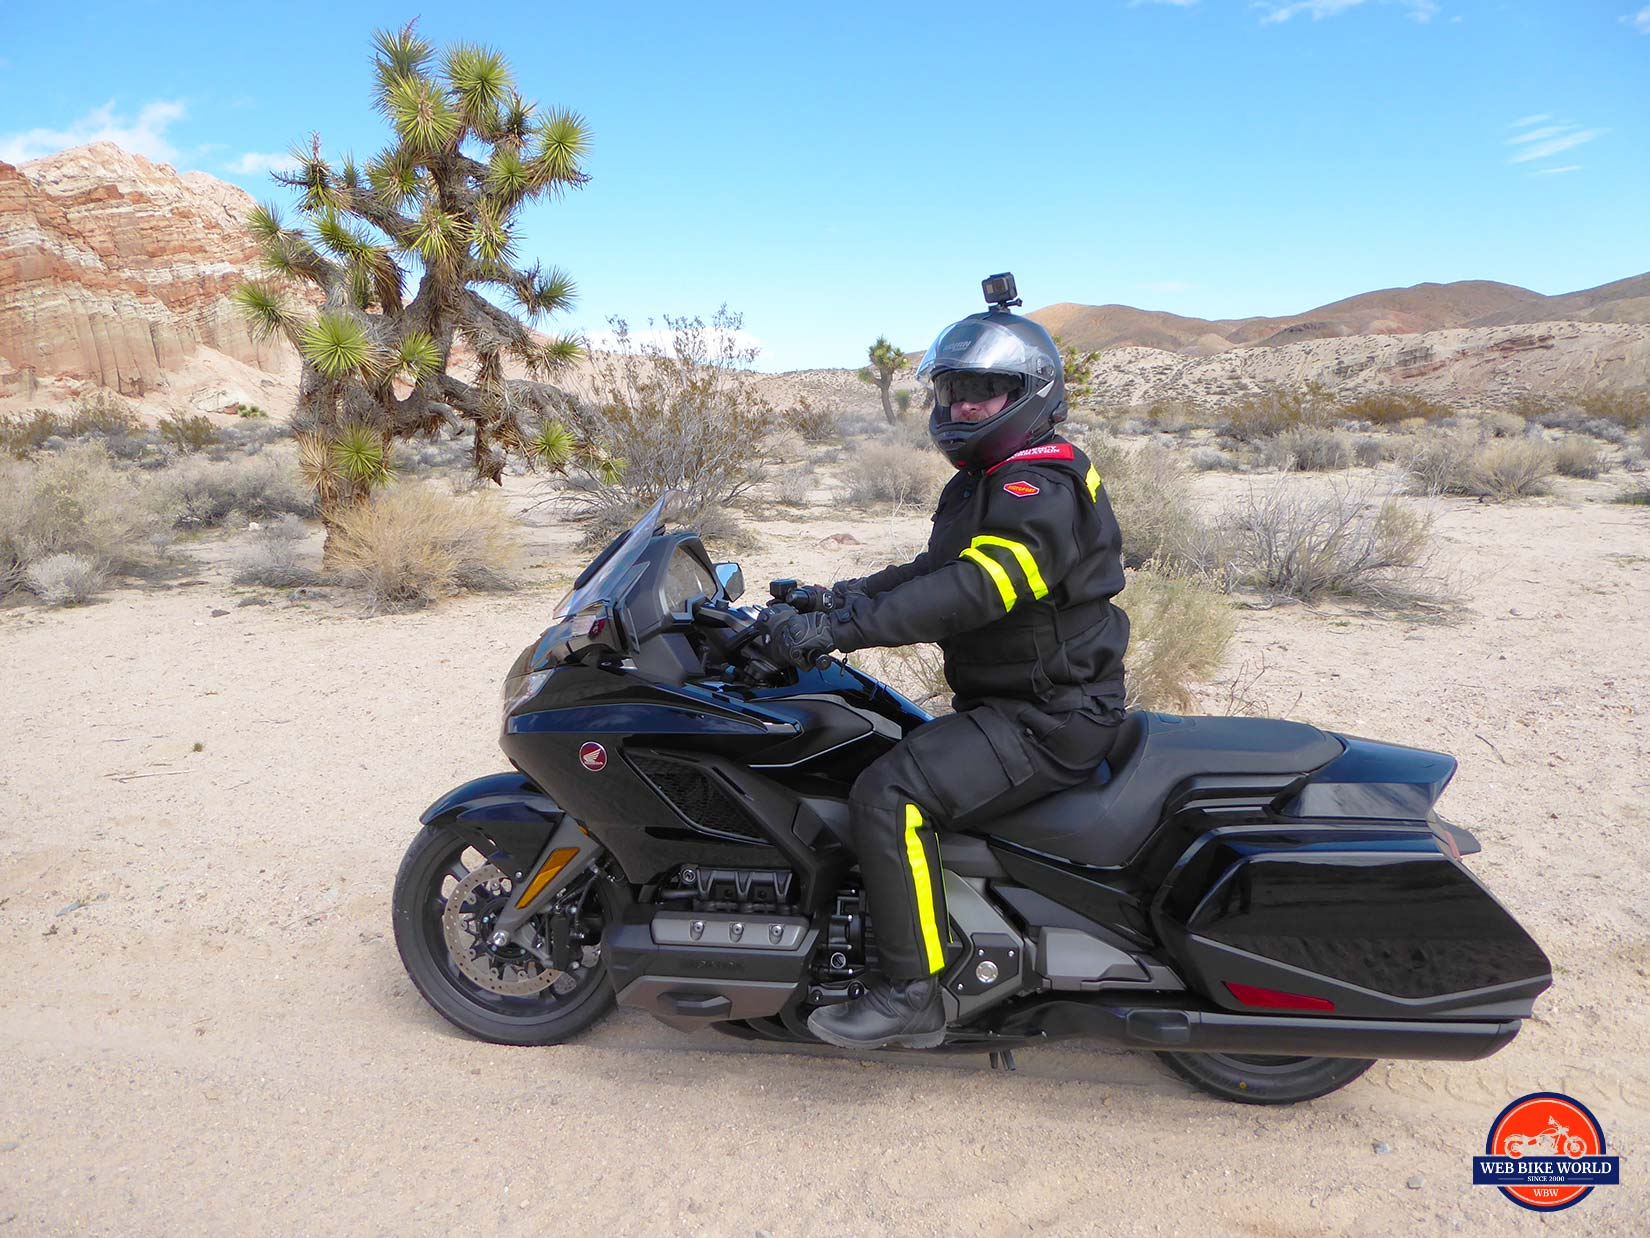 Me with the Honda Gold Wing DCT.